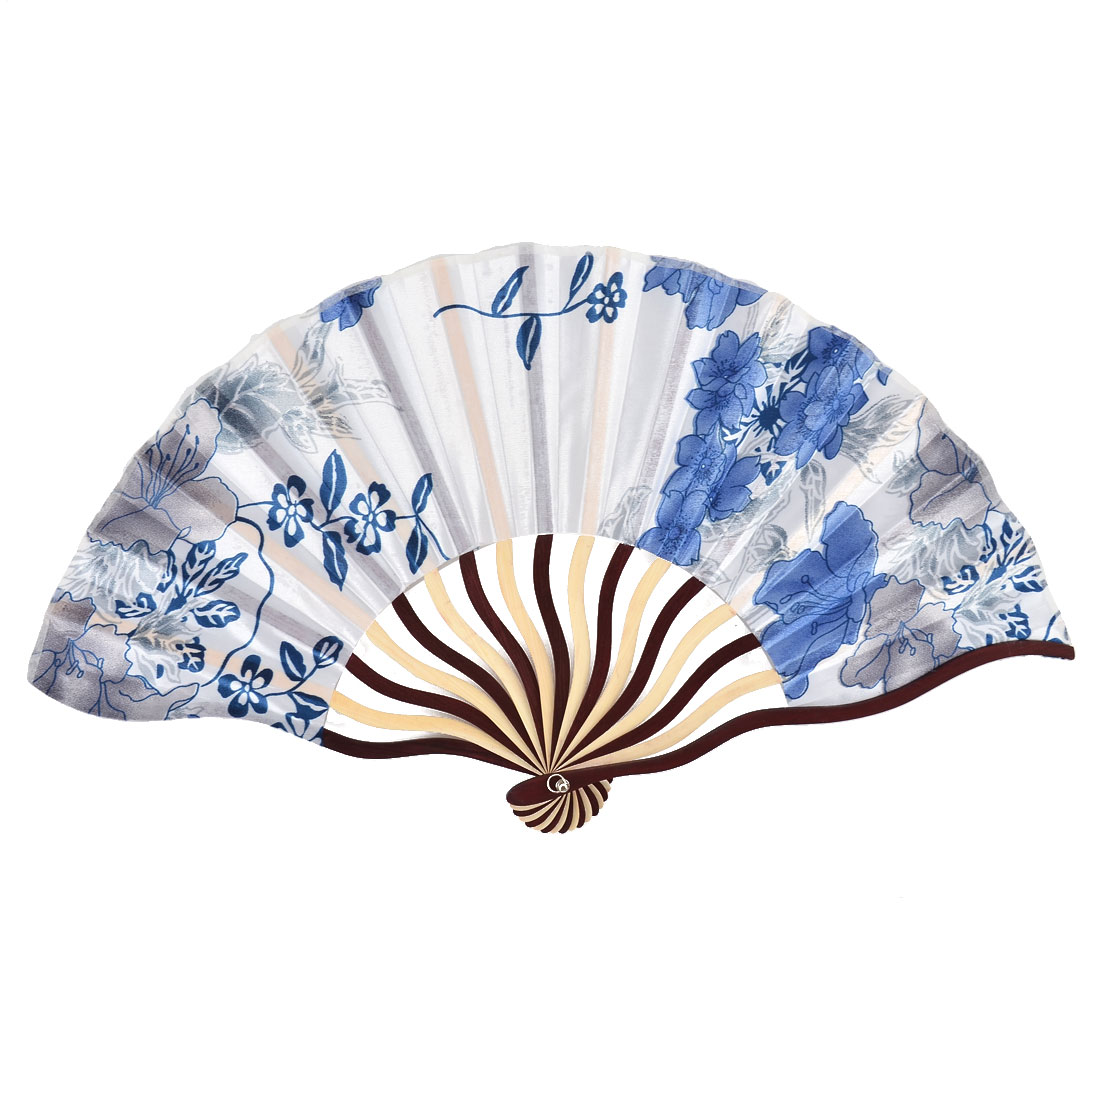 Bamboo Ribs Blossom Pattern Summer Cool Folding Hand Fan White w Pouch